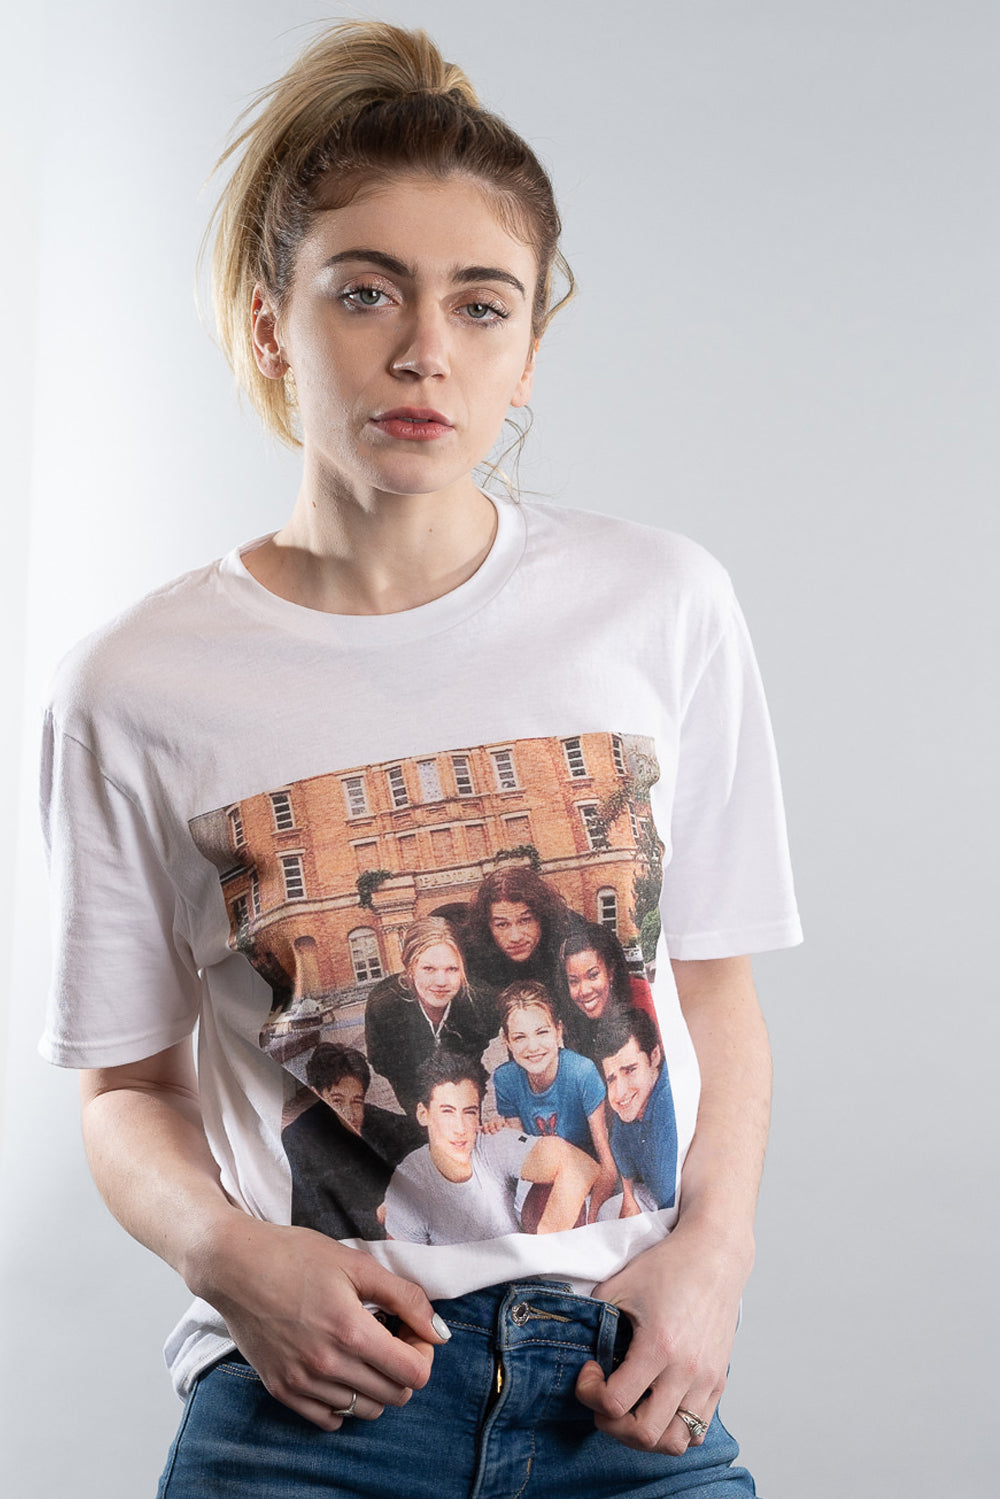 10 Things I Hate About You Photo Tee - Totally Good Time